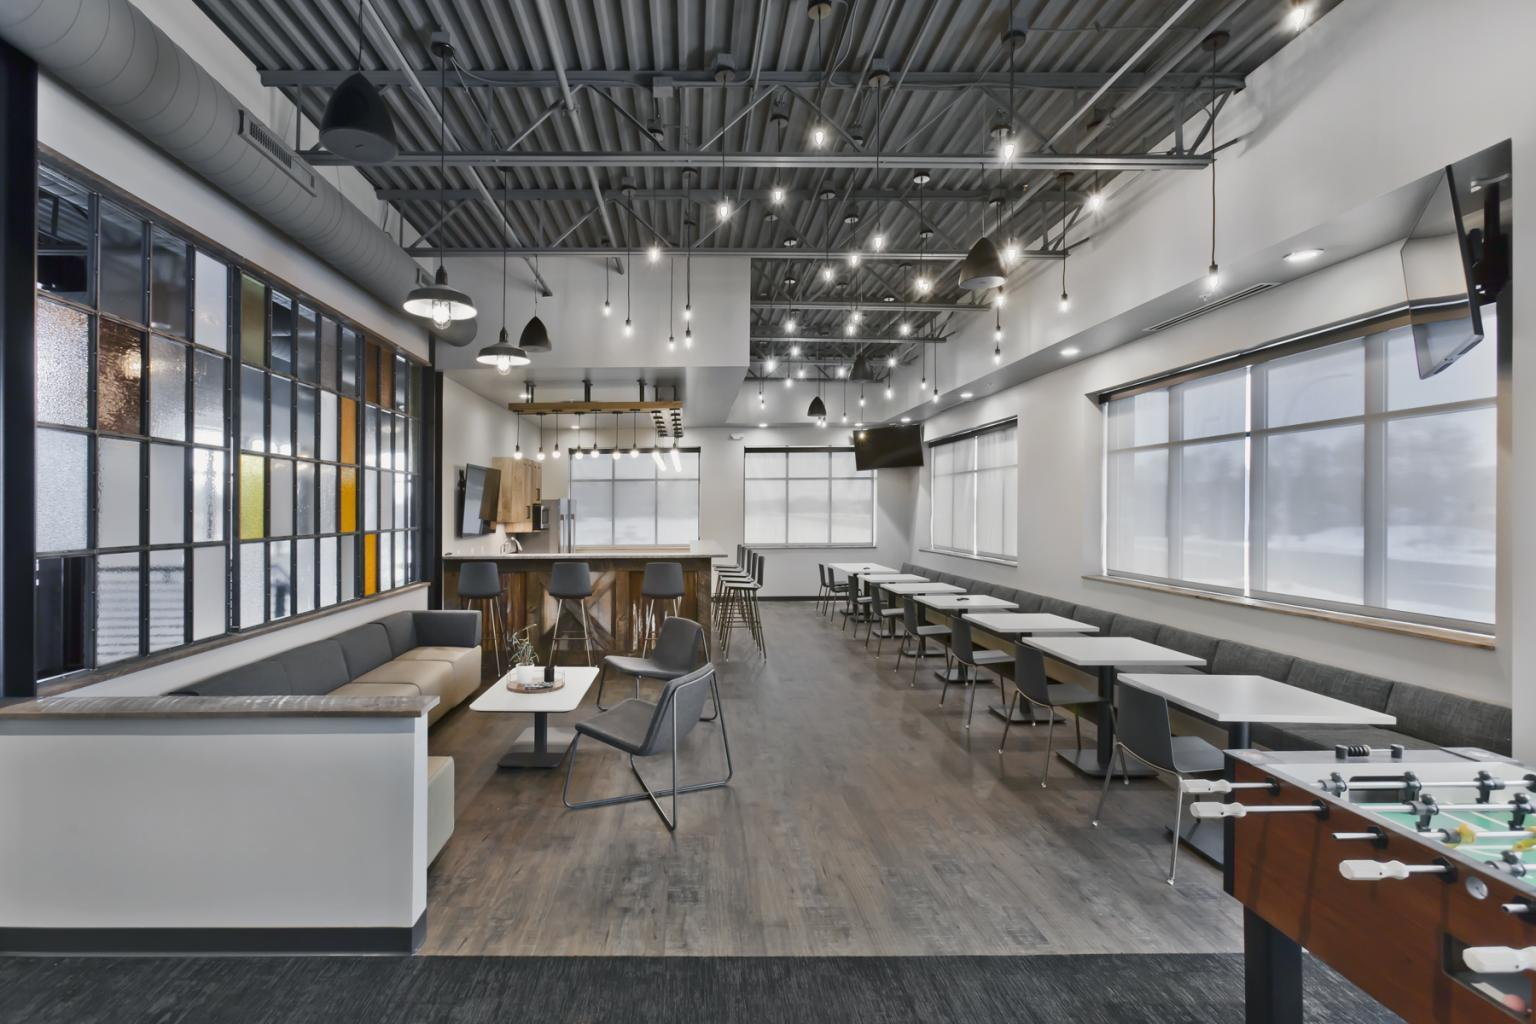 Bauer Design Build completed this 2-story office building that includes a large multipurpose lunch/training room.